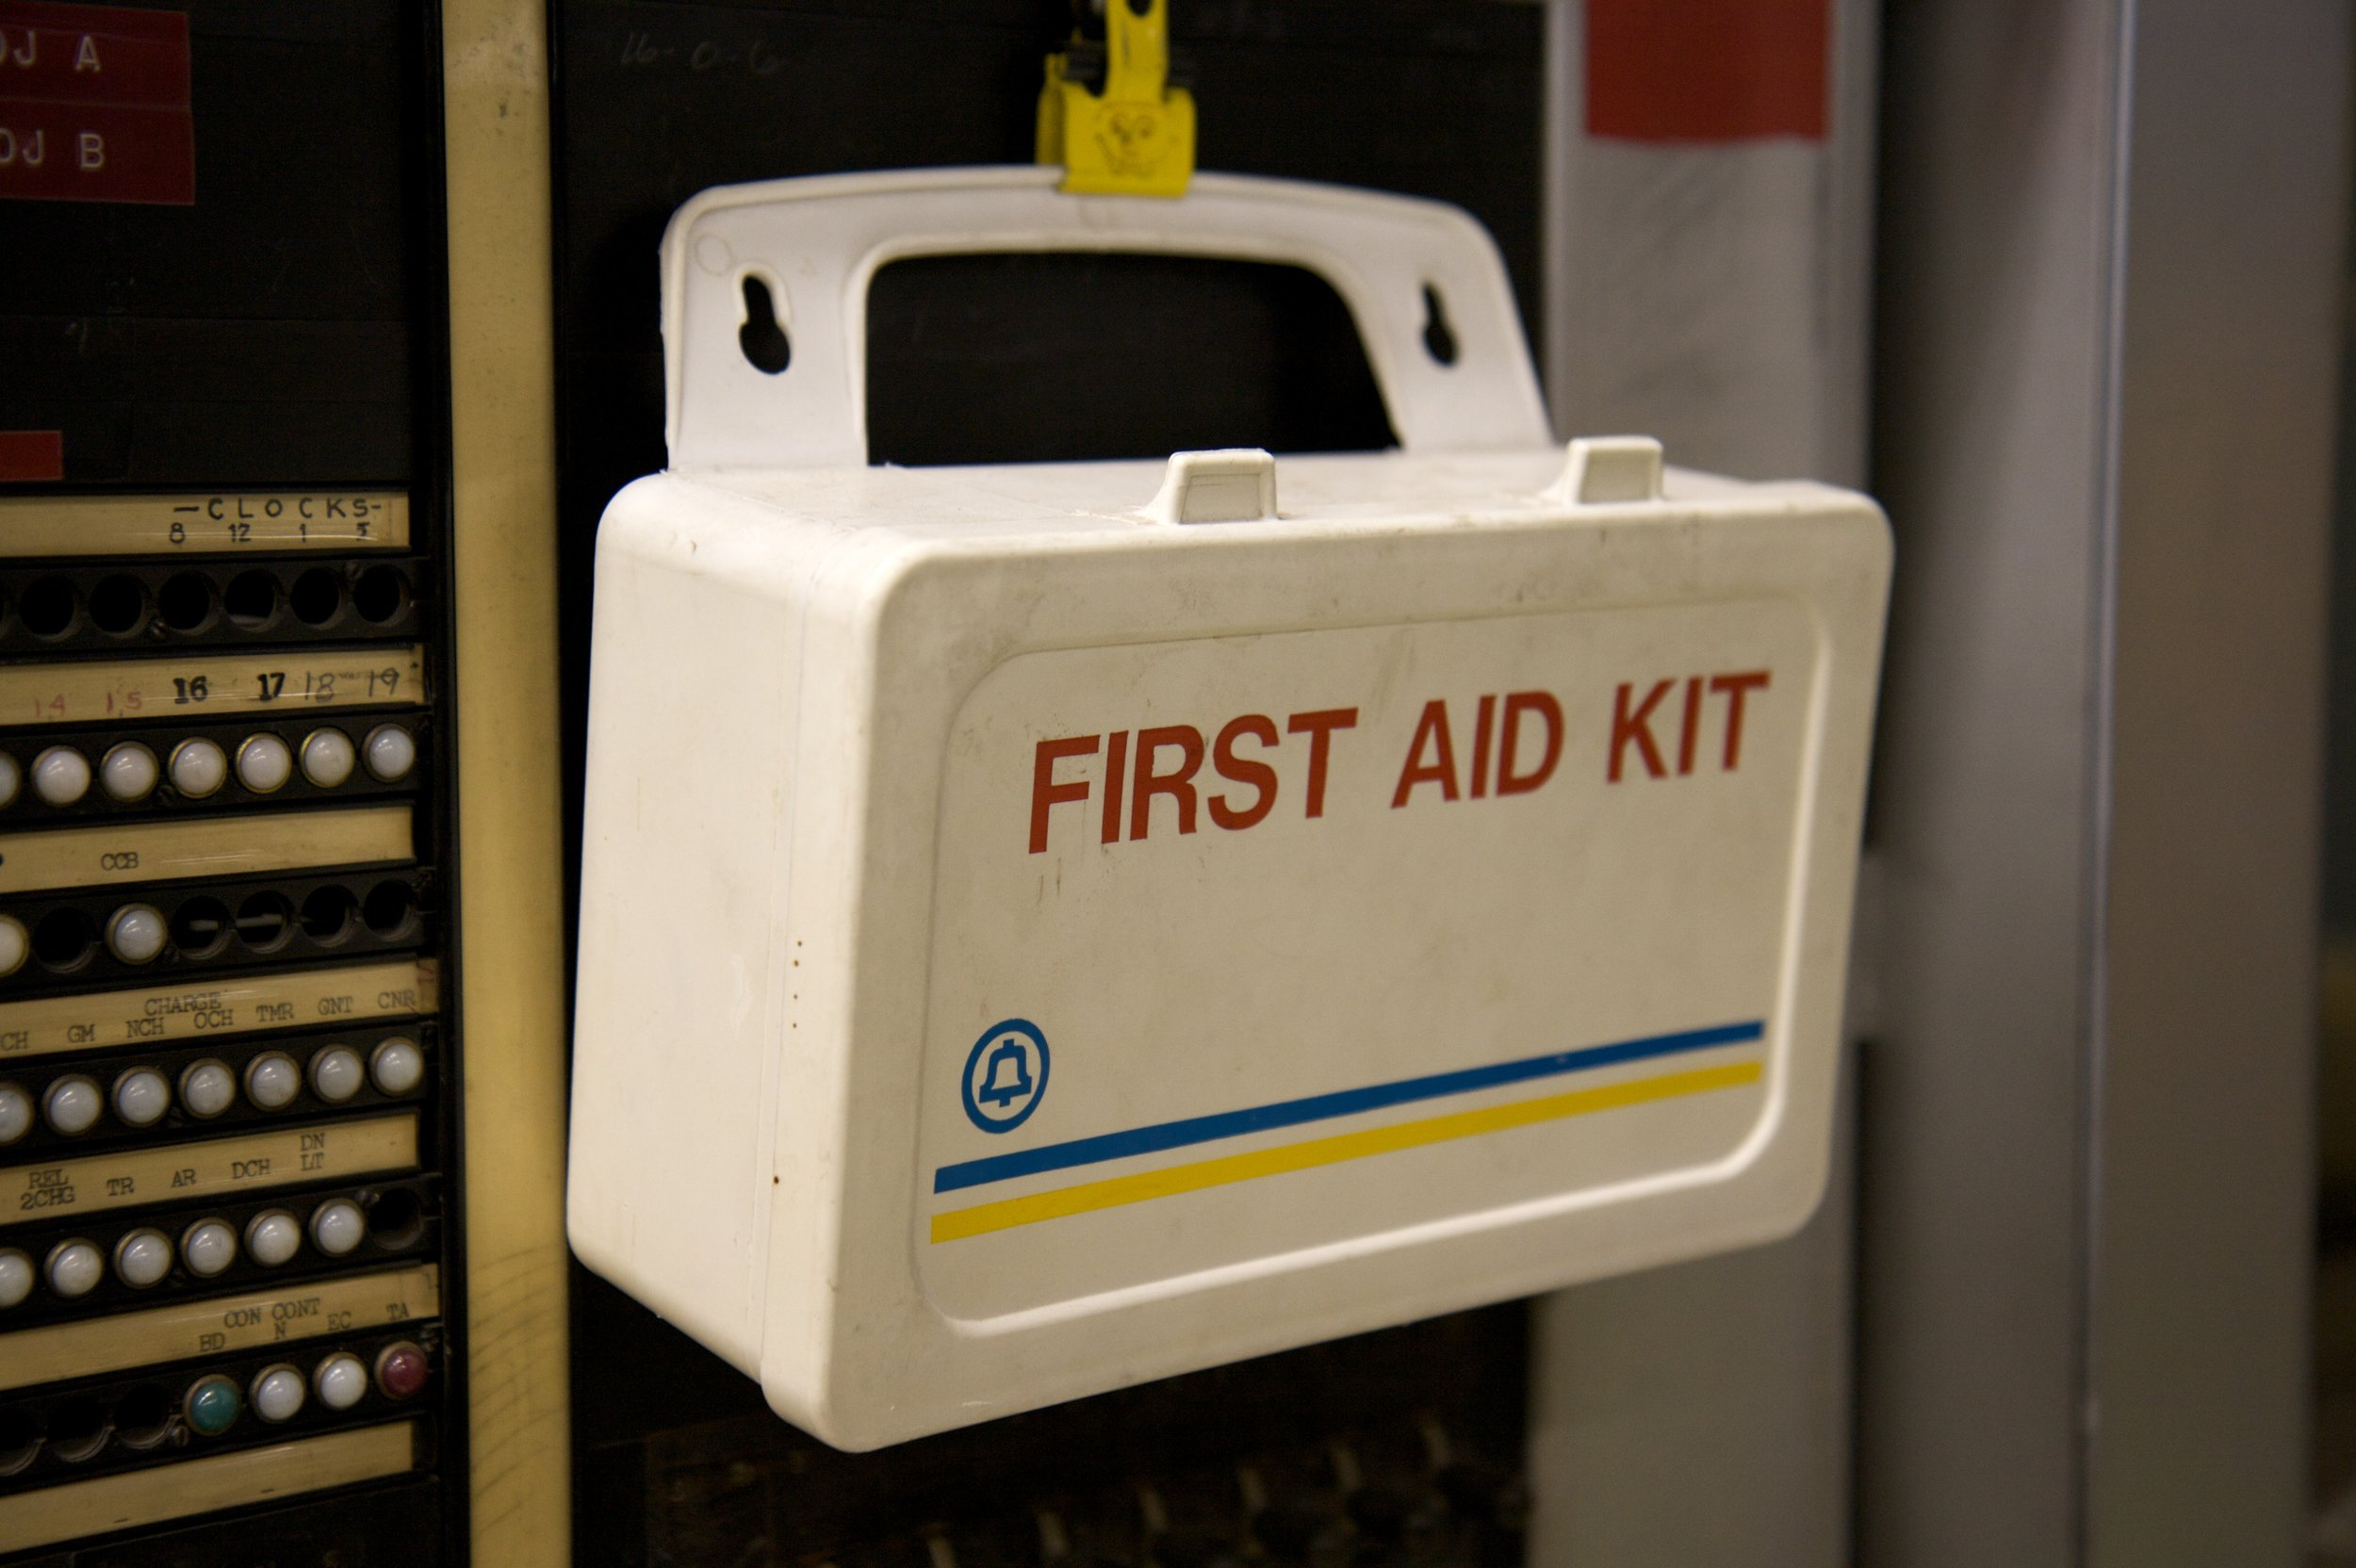 A first-aid kit may come in handy in a medical emergency. Image credit:  Marcin Wichary / Creative Commons